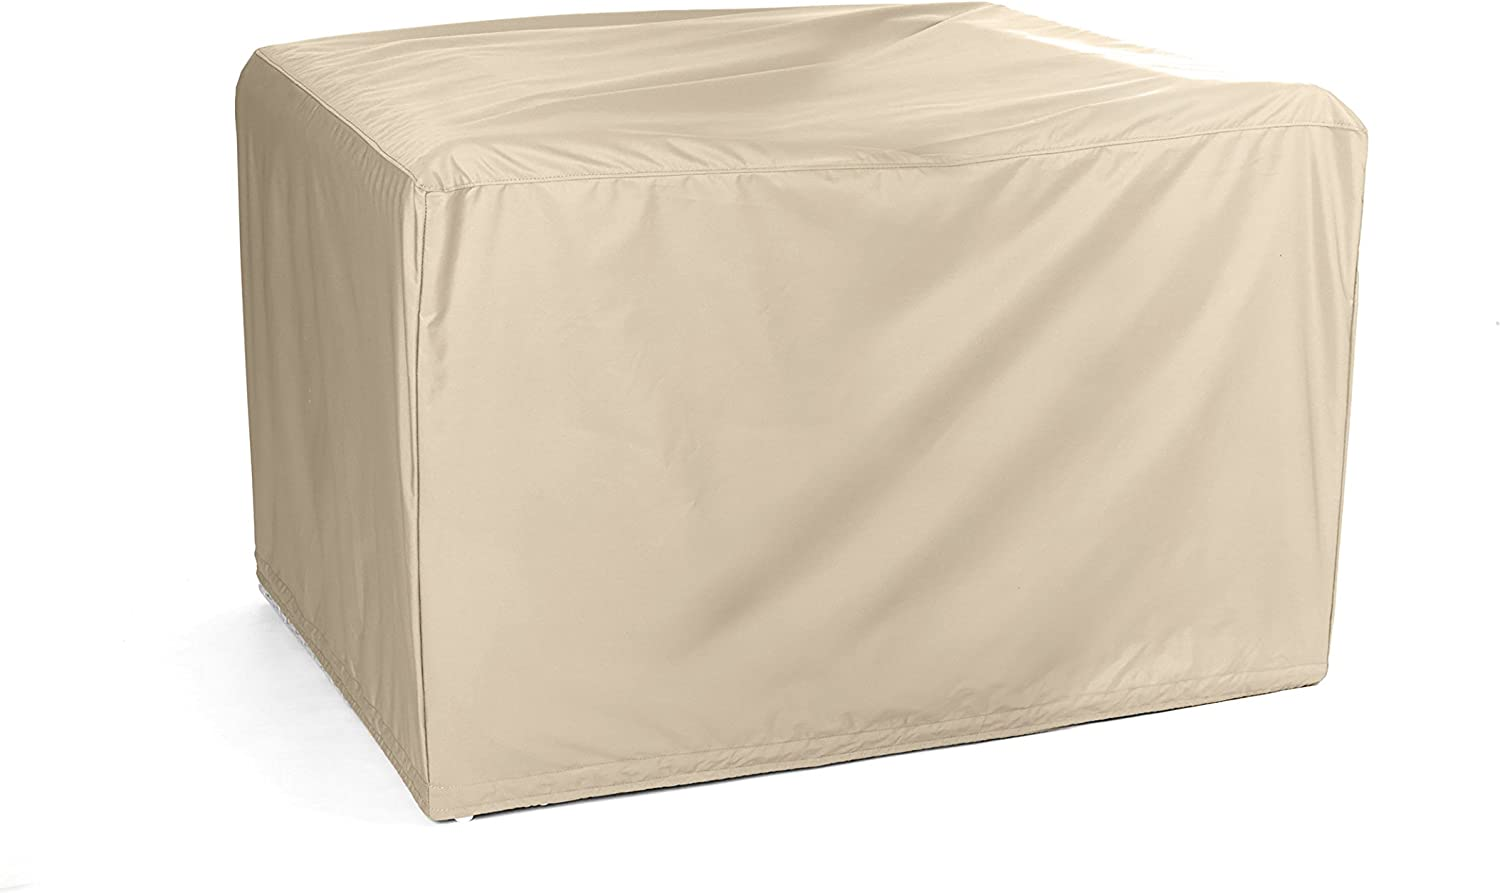 Covermates Modular Sectional Club Chair Cover 38W x 38D x 35H Elite Collection 3 YR Warranty Year Around Protection – Khaki